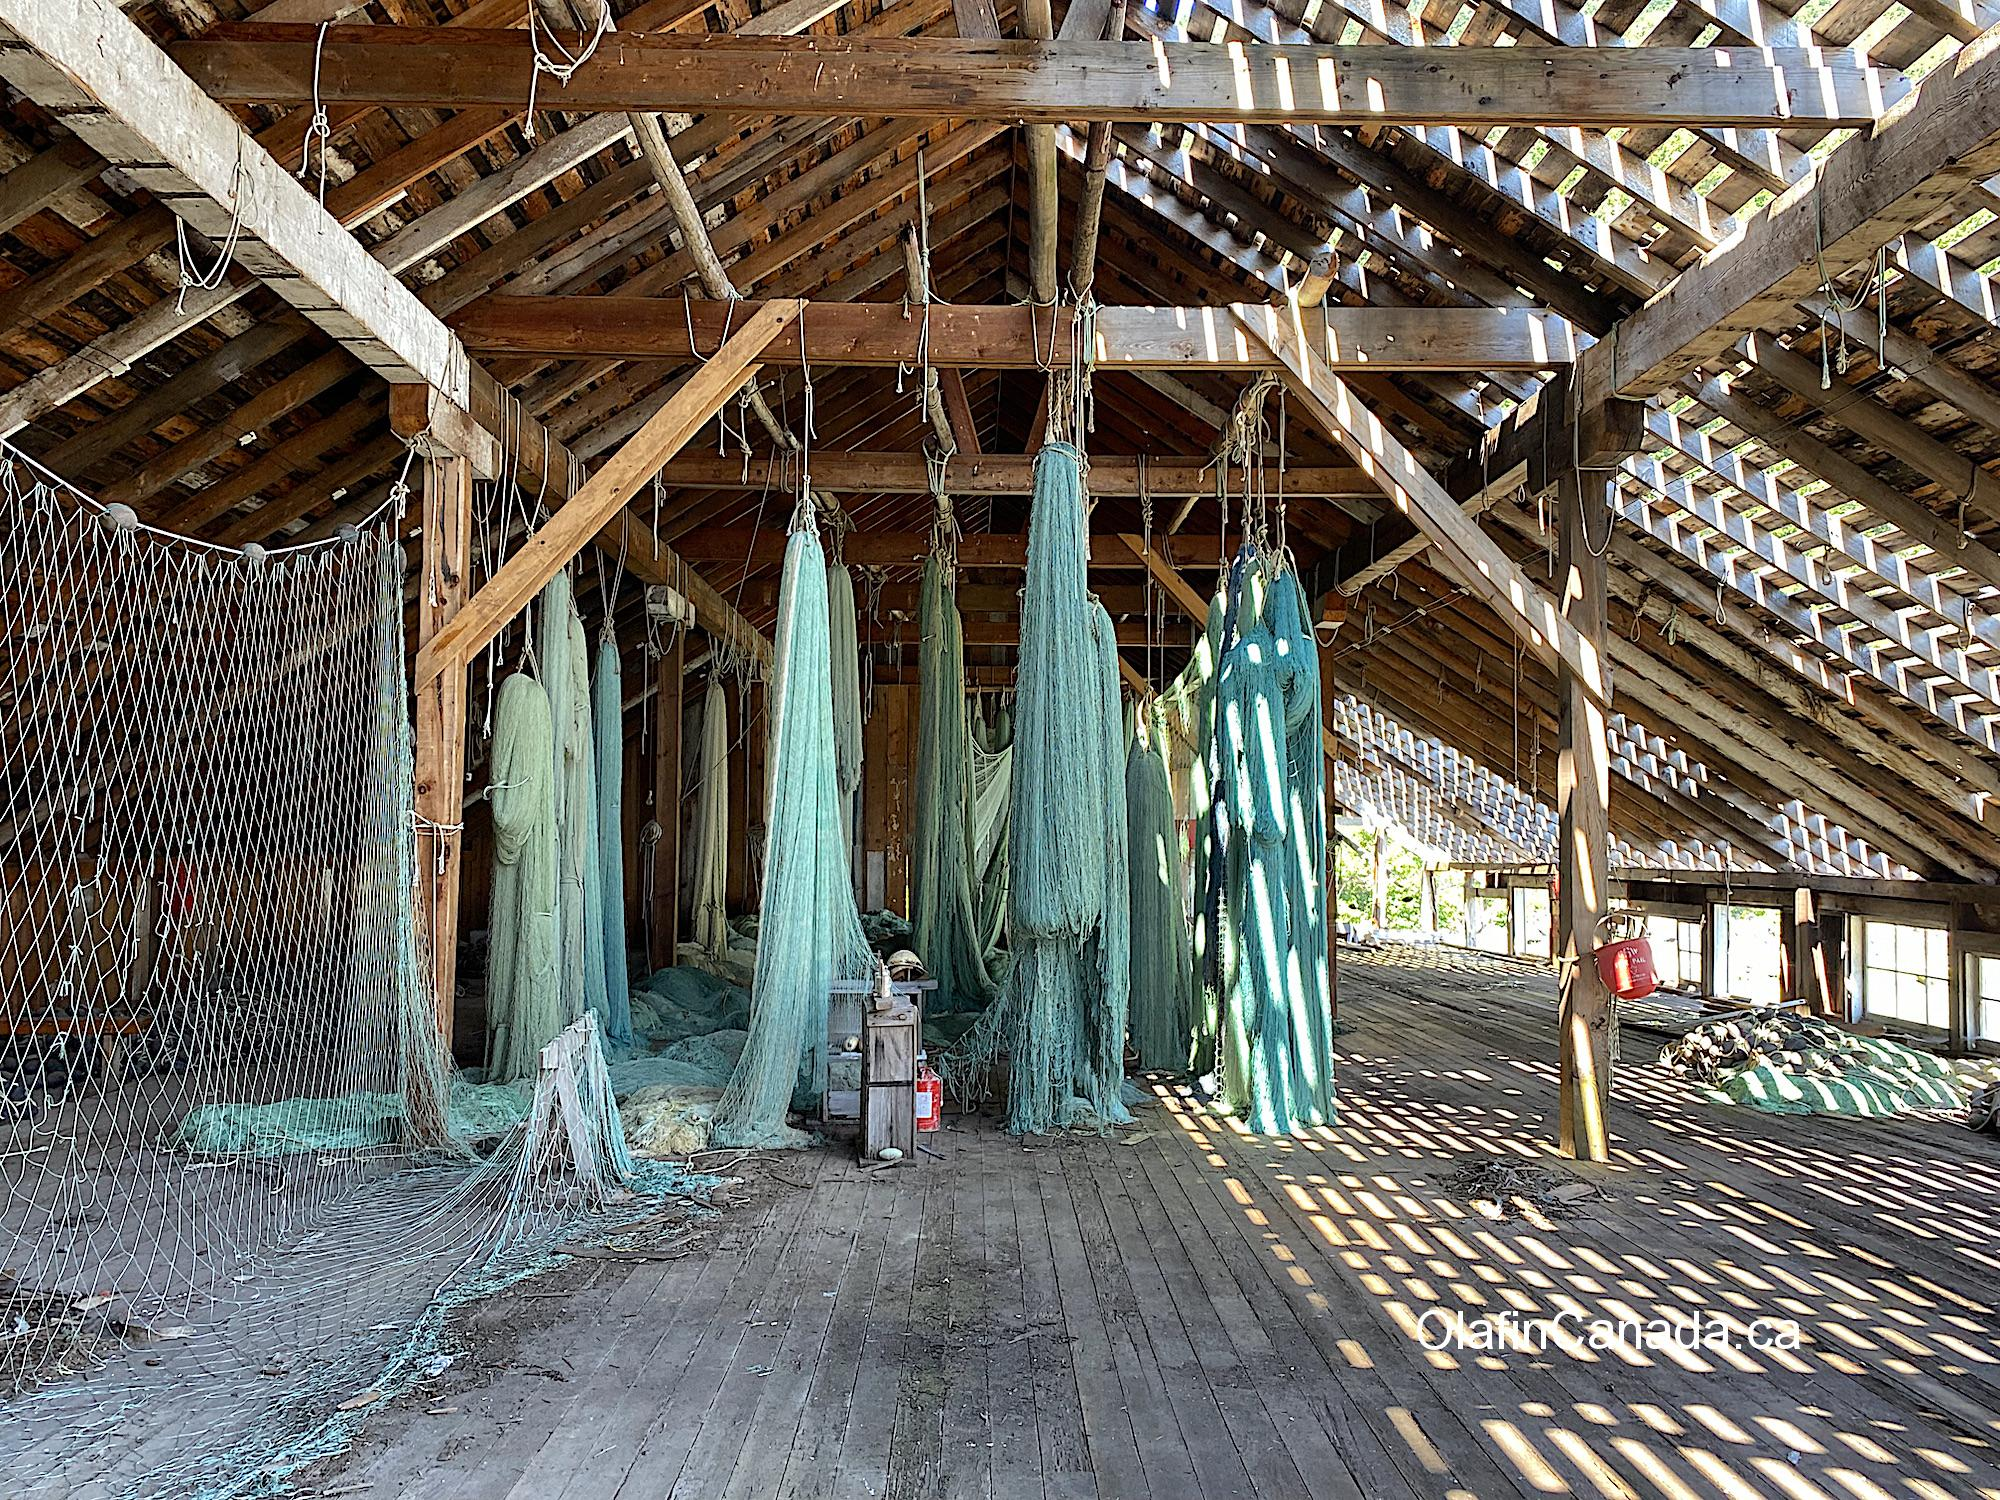 Nets hanging to dry on the first floor of the cannery #olafincanada #britishcolumbia #discoverbc #abandonedbc #tallheocannery #bellacoola